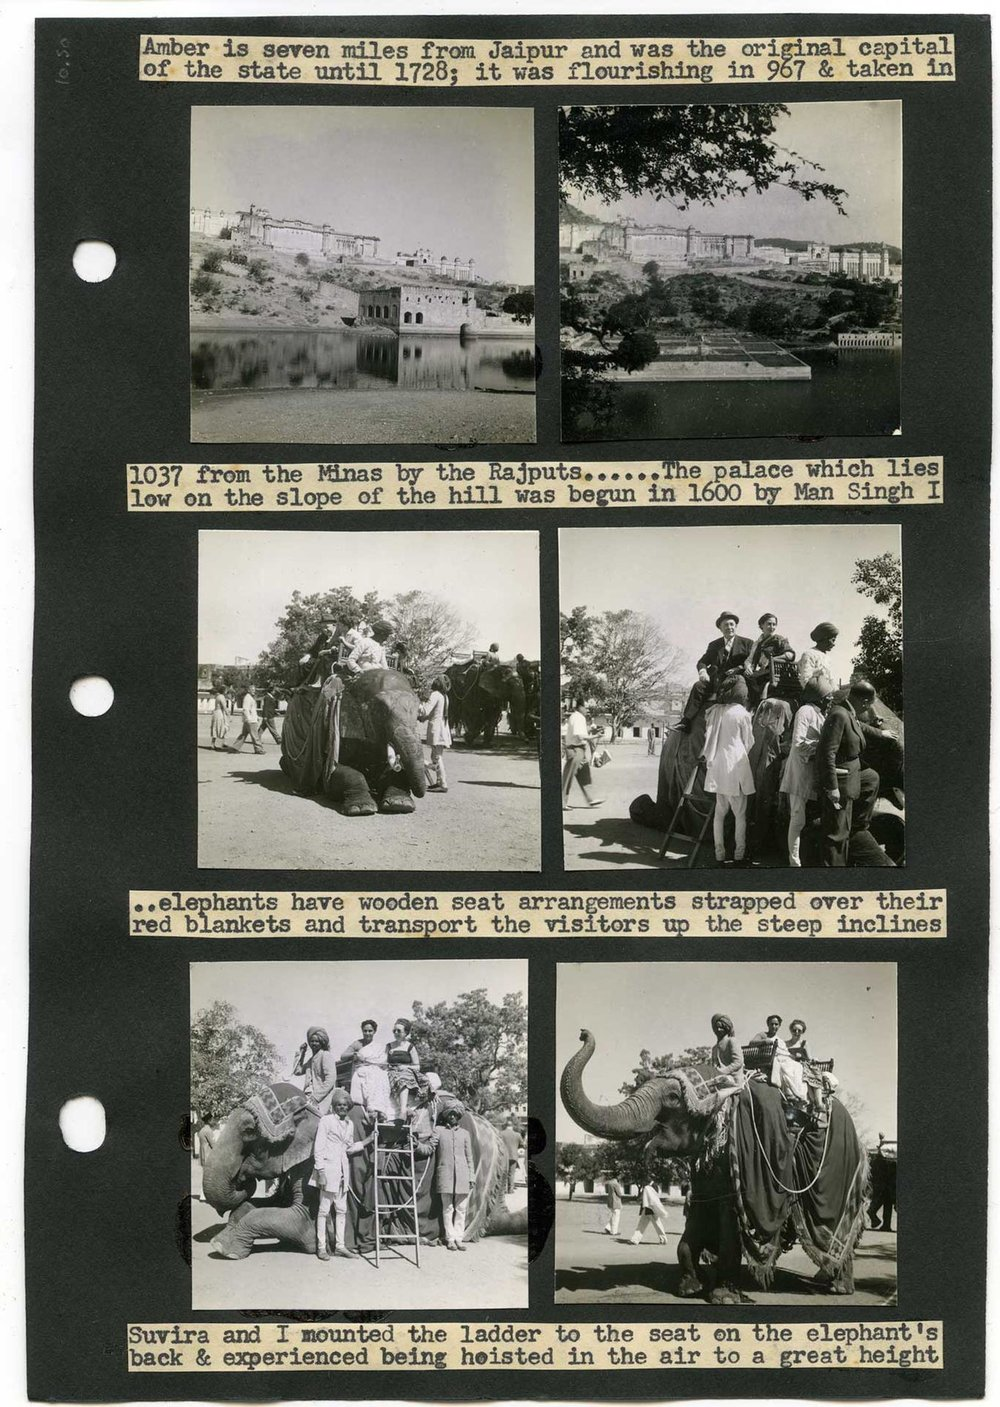 Margaret Corry, album-page showing elephant riding in Jaipur, India. From Margaret Corry's album of travels through Hyderabad, Ajanta, Dehra Dun, Madras, Delhi, Agra, Jaipur, Gaspe, Quebec, and Ontario. 1954. Gelatin silver prints and typed captions mounted on paper. Gift of Beverley Martin. Courtesy of The Family Camera Network and the ROM. 2017.34.10.26 (Photo: Courtesy of Brian Boyle MPA, FPPO photo, 2017 © ROM).